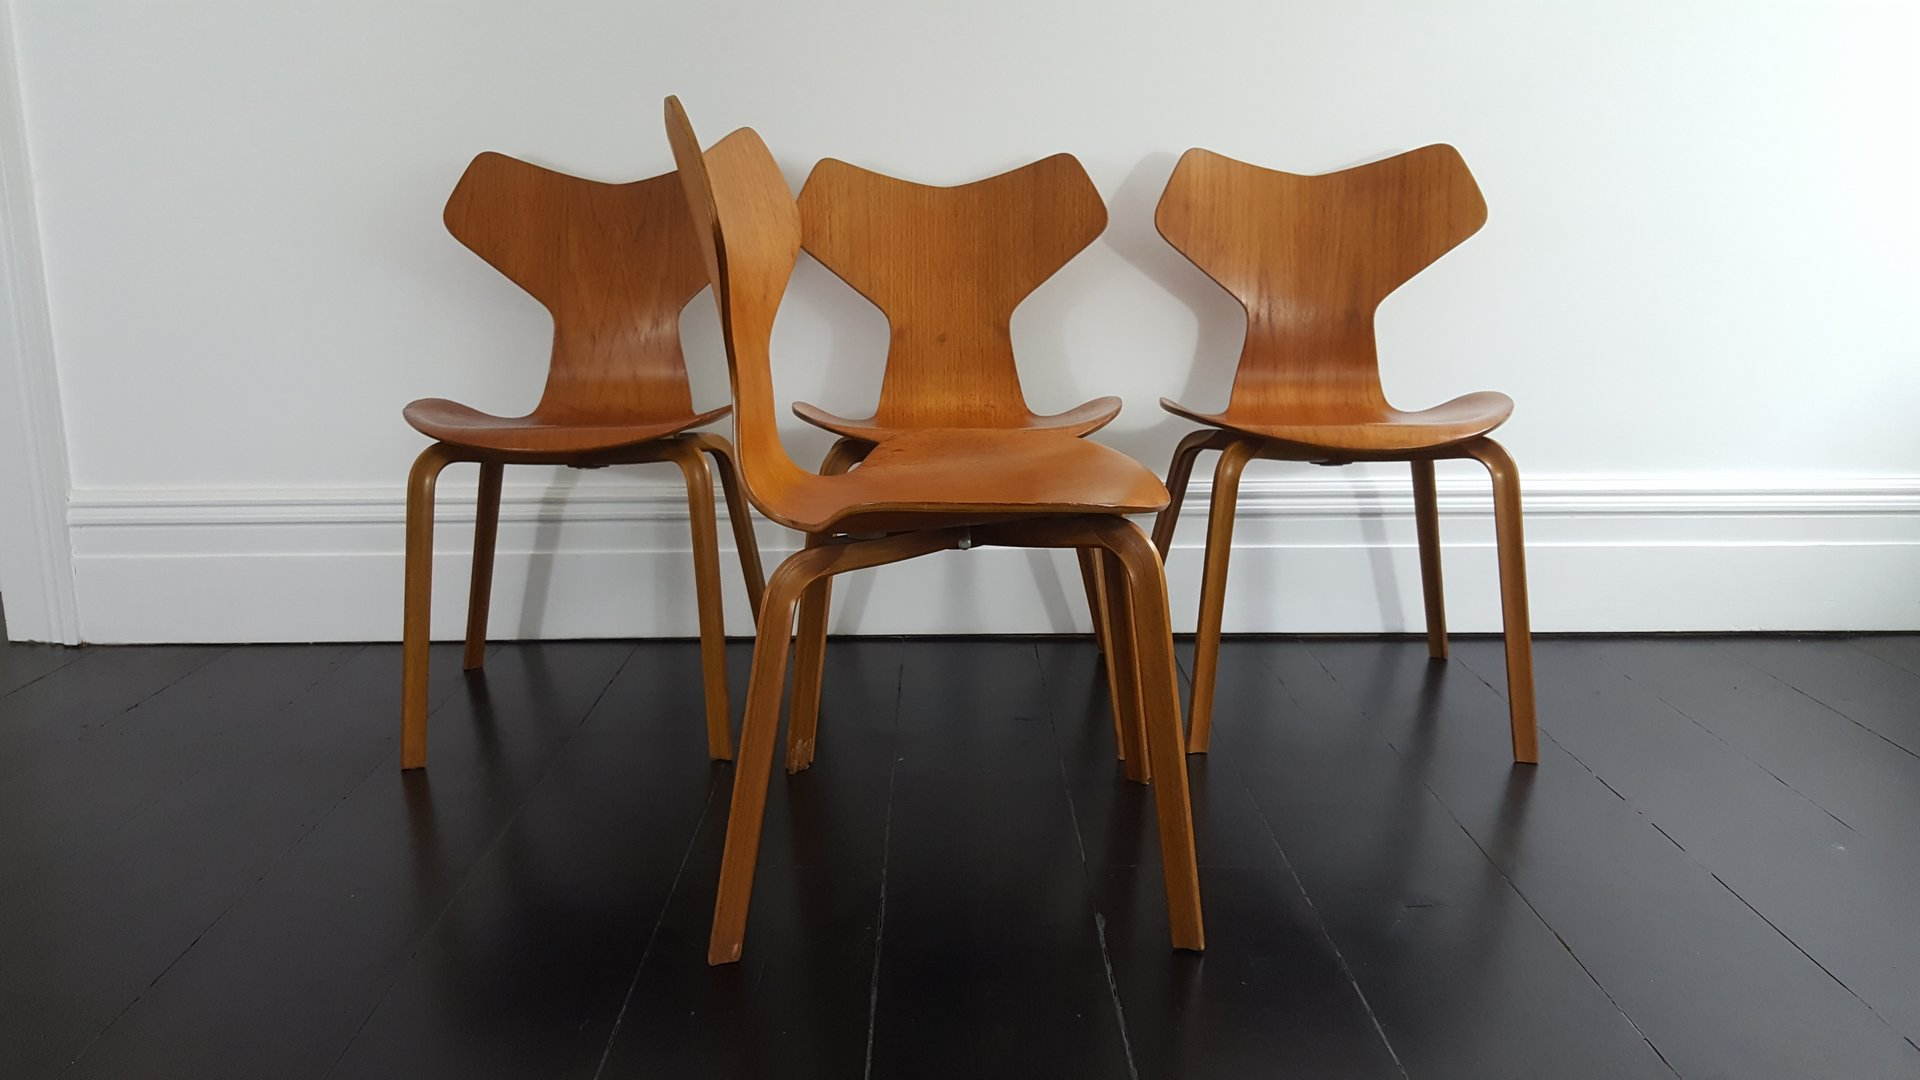 model 3130 grand prix chairs by arne jacobsen for fritz hansen 1967 set of 4 for sale at pamono. Black Bedroom Furniture Sets. Home Design Ideas